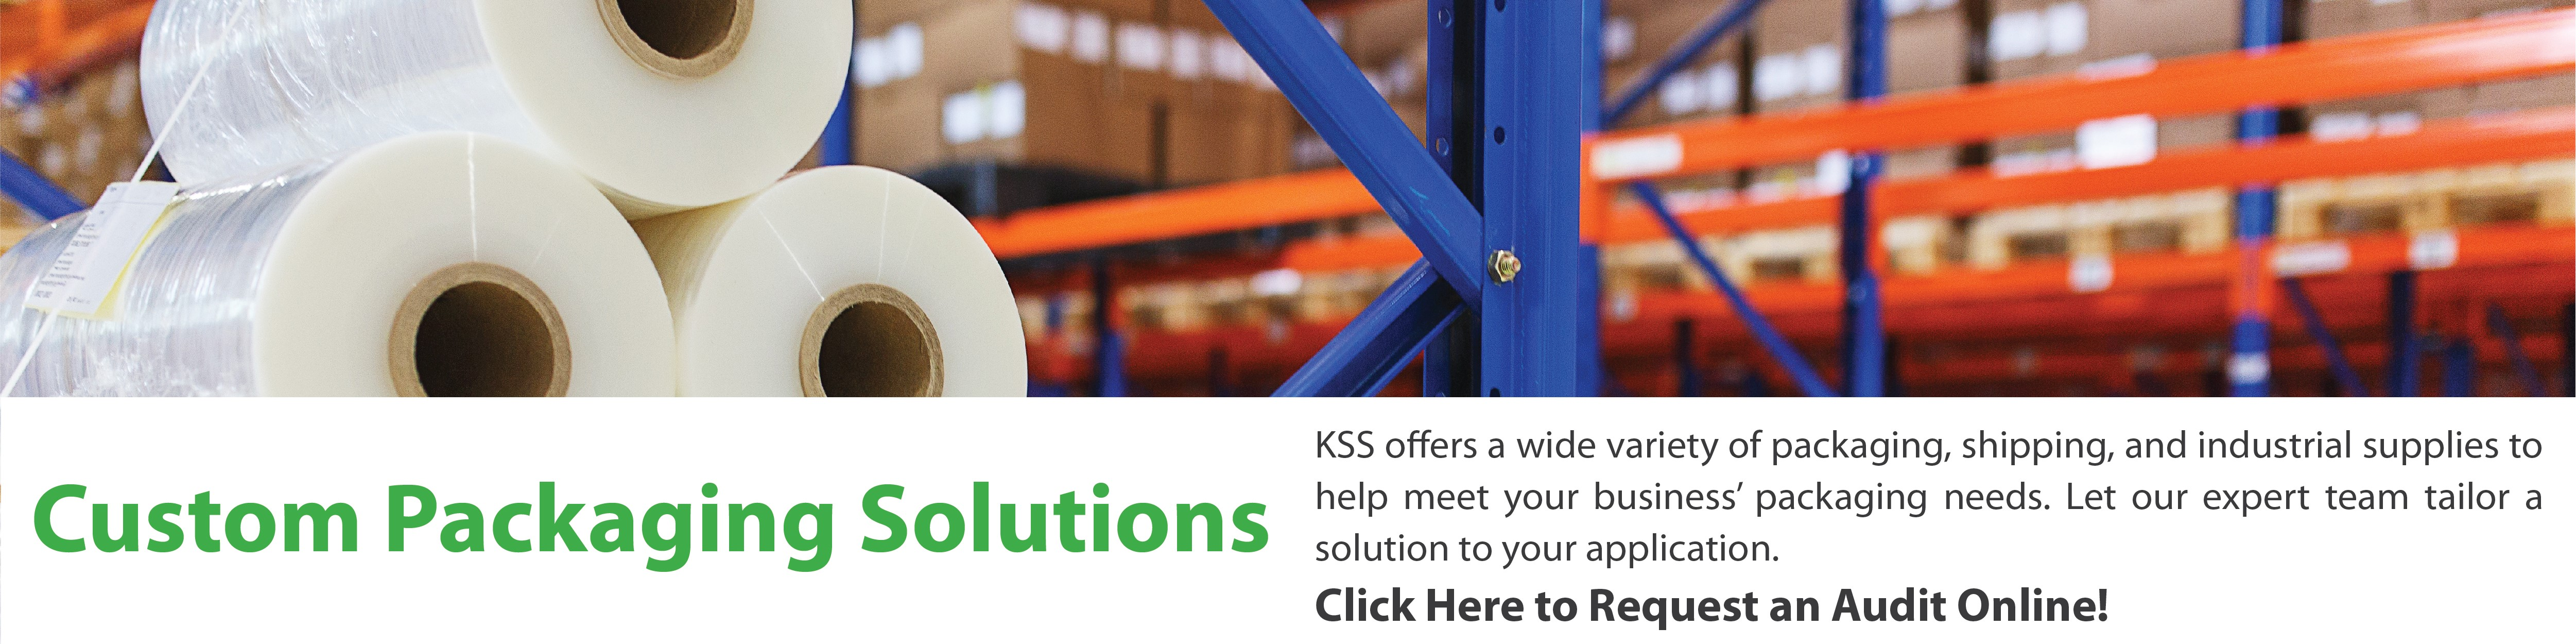 KSS Custom Packaging Solutions